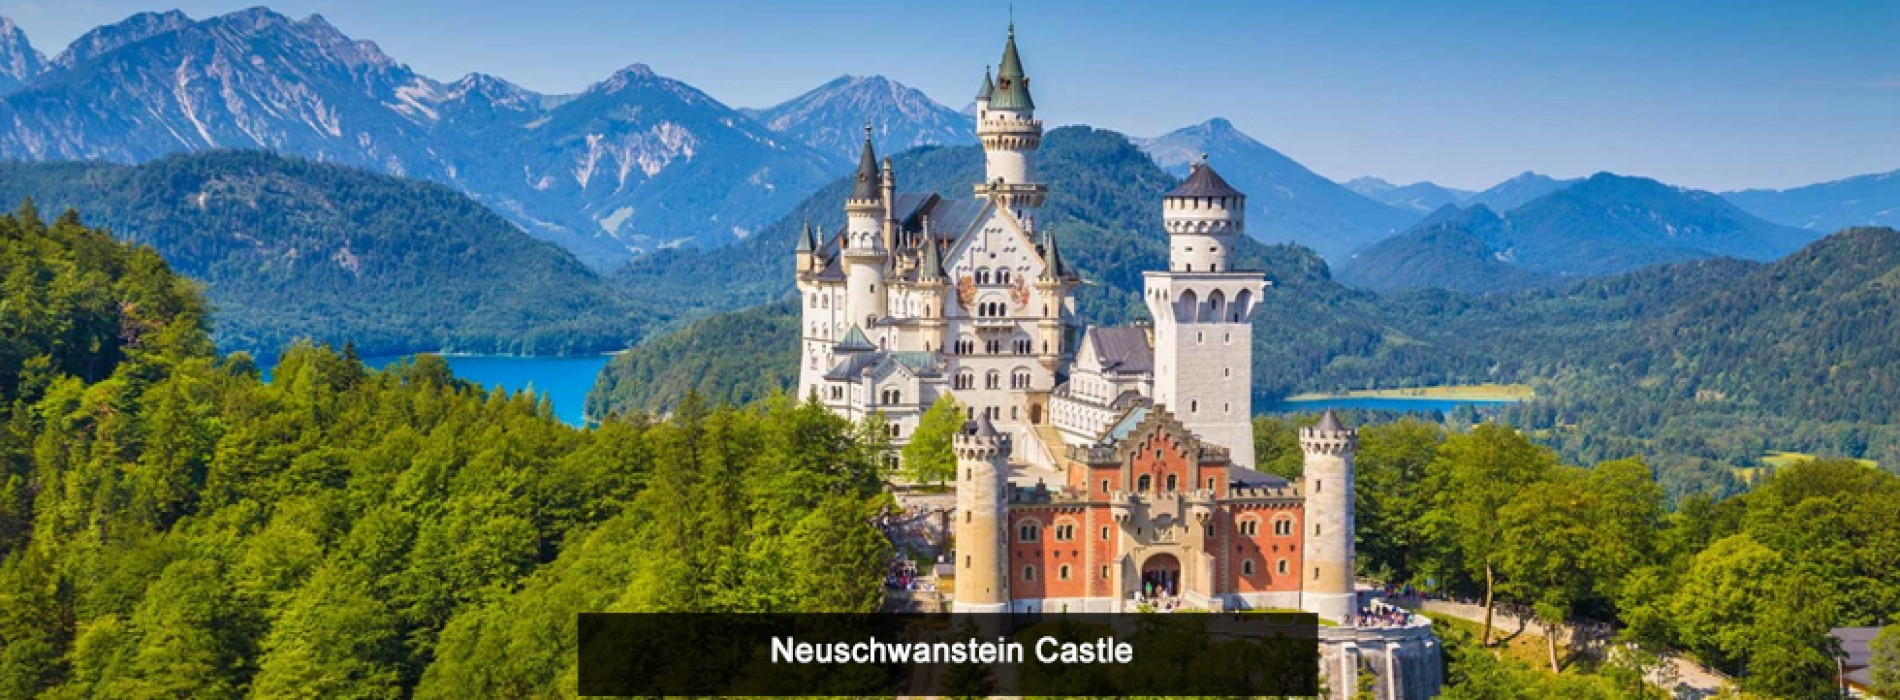 Tango Argentino At The Foot Of The Famous Neuschwanstein